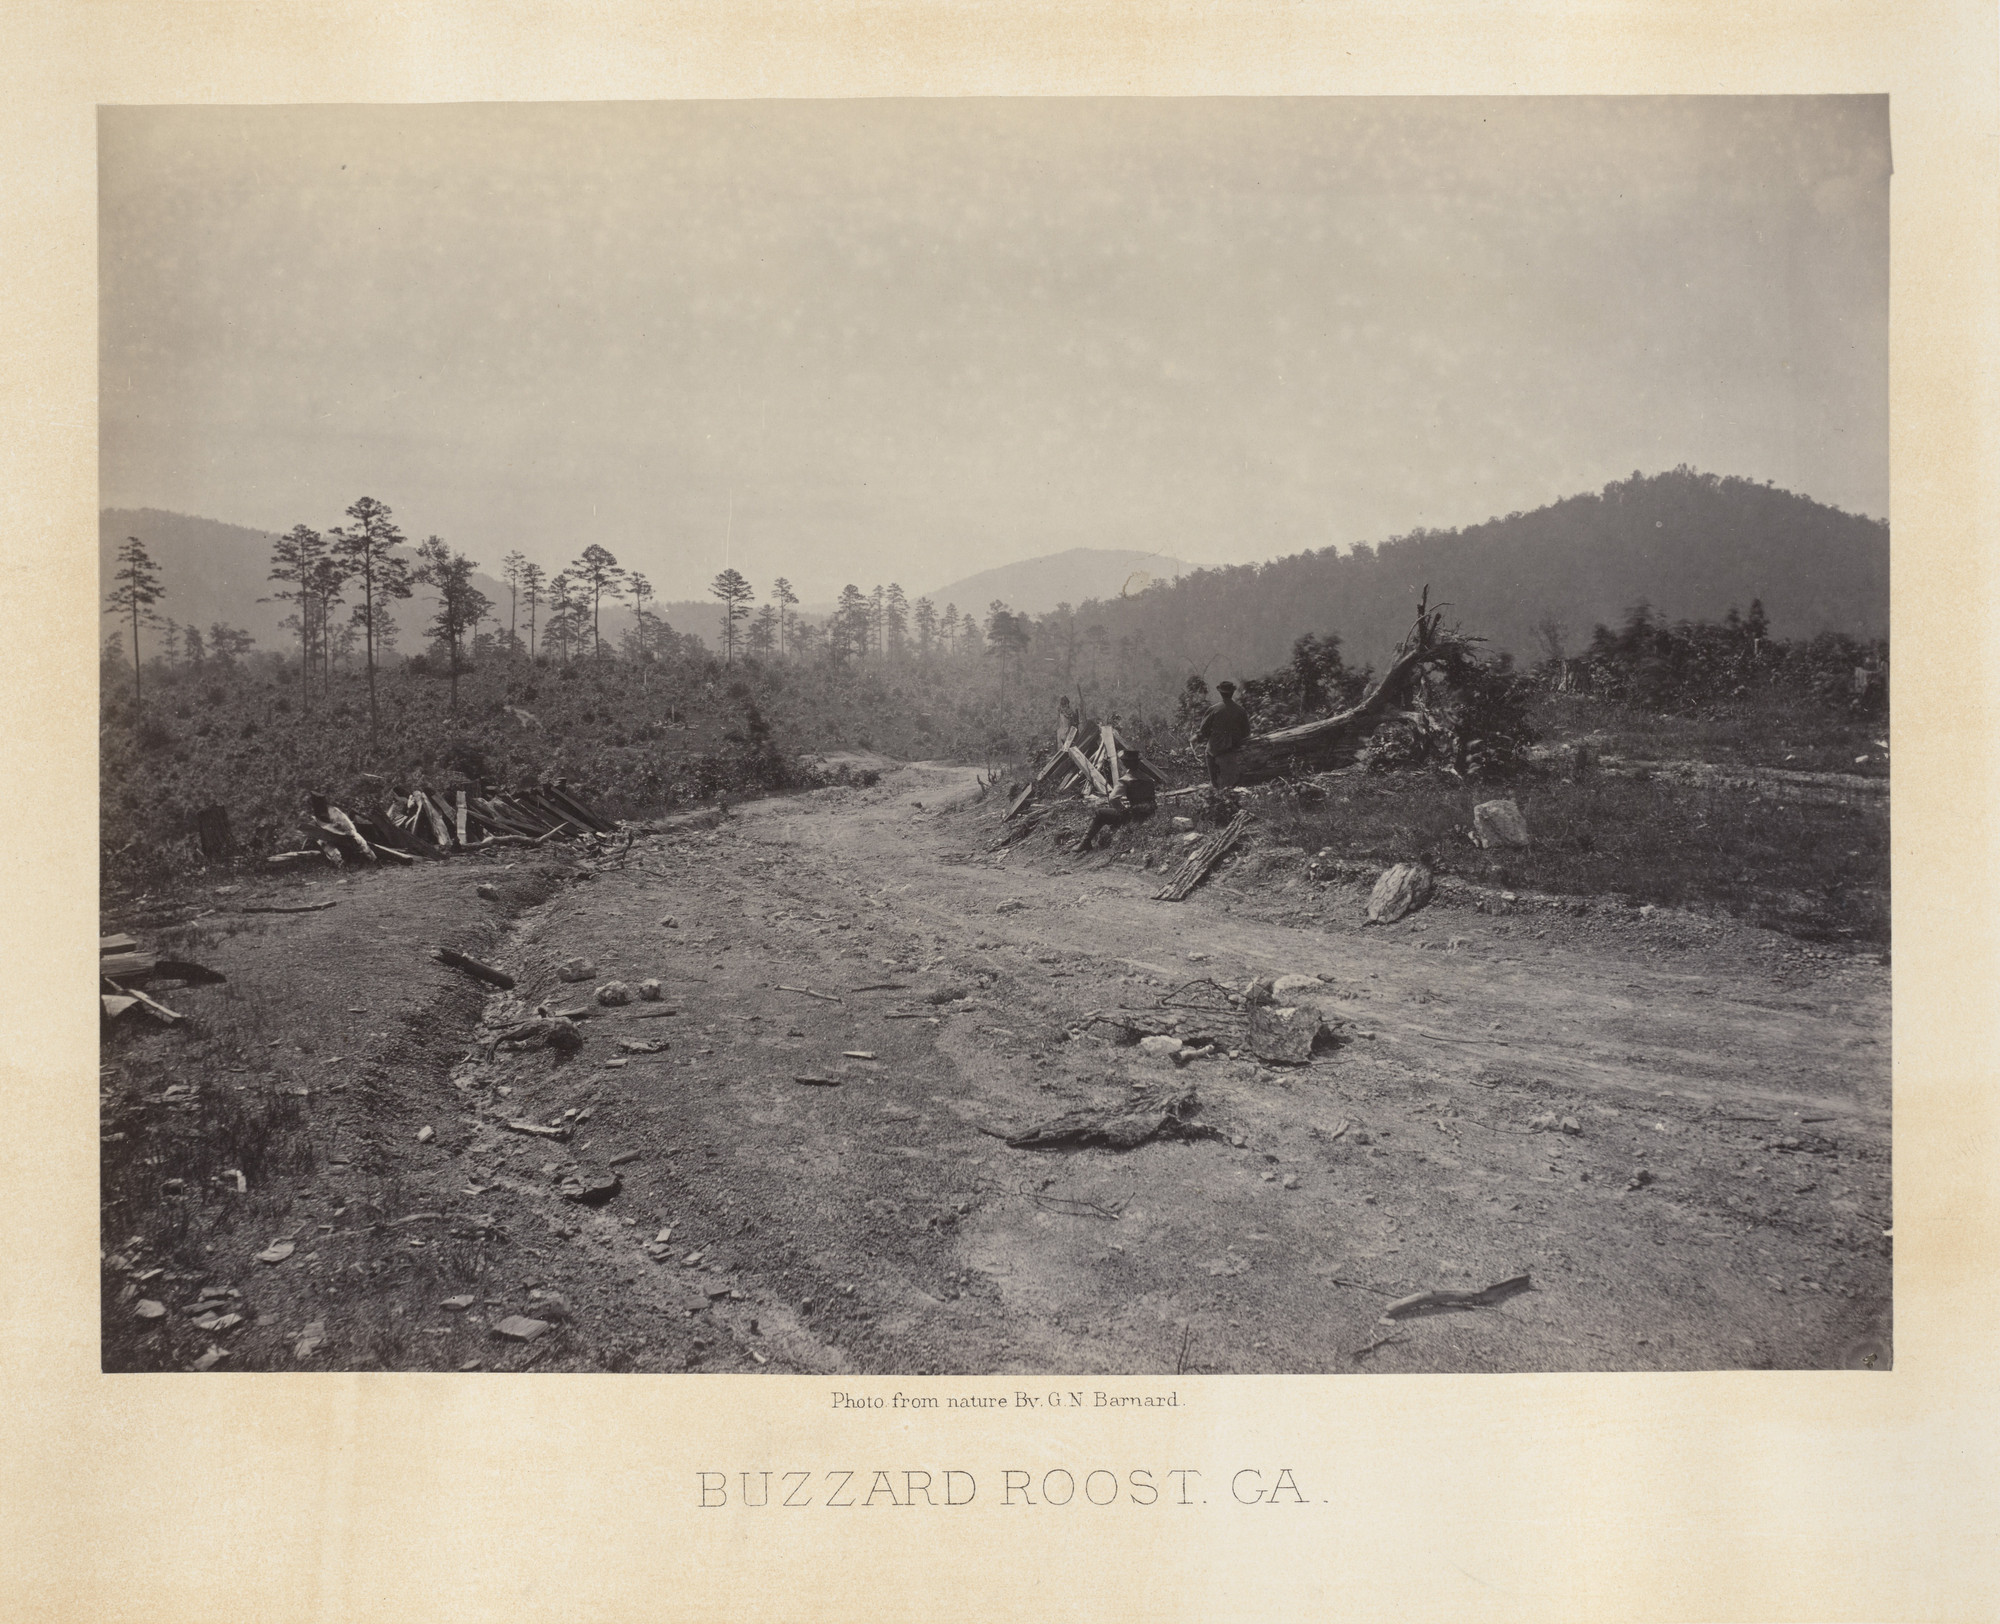 George Barnard. Buzzard Roost from the album Photographic Views of Sherman's Campaign. 1864-65